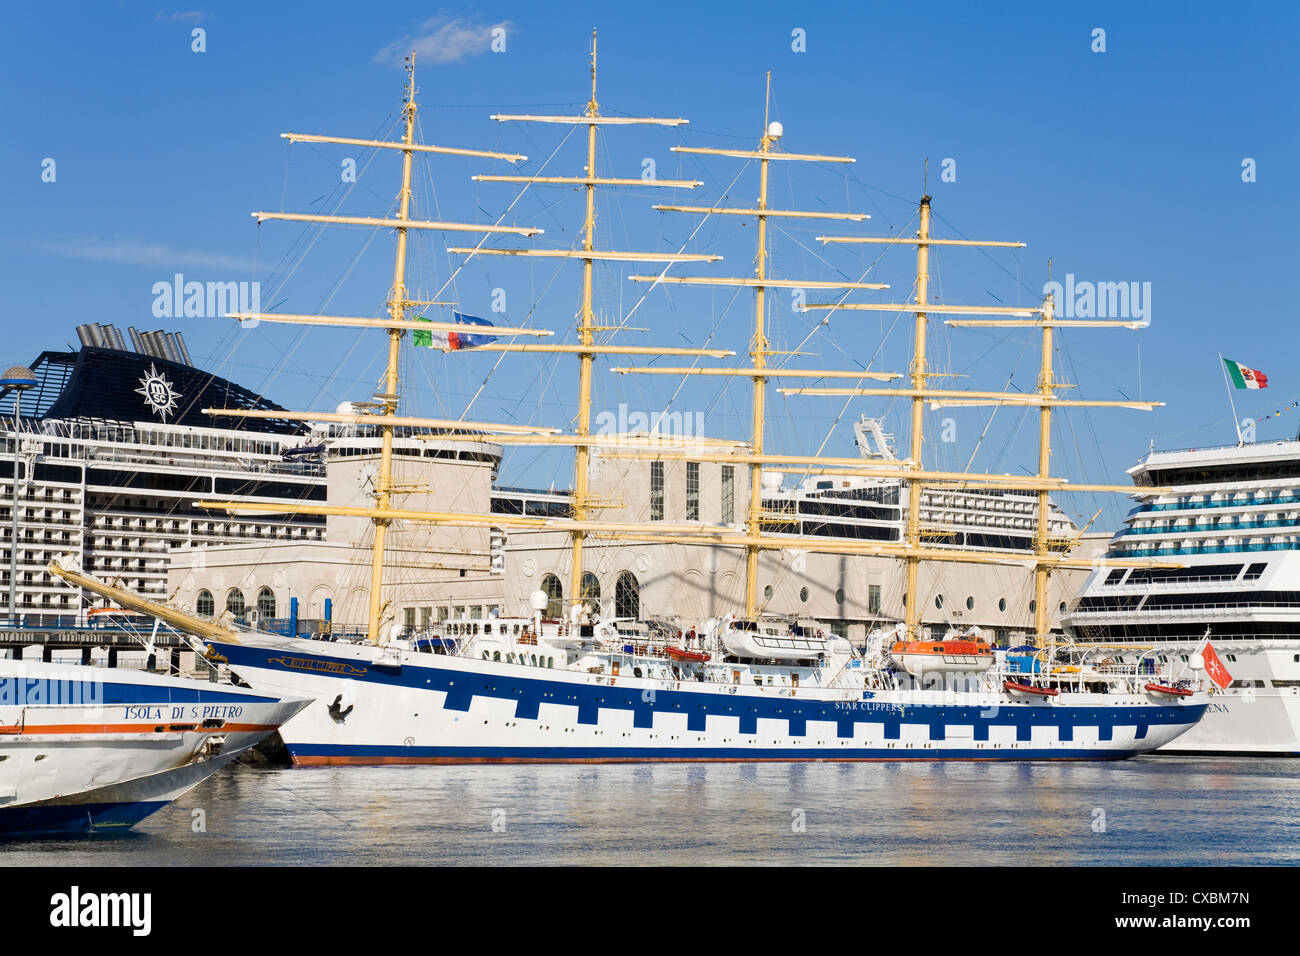 Royal Clipper cruise ship in Naples Port, Campania, Italy, Europe - Stock Image